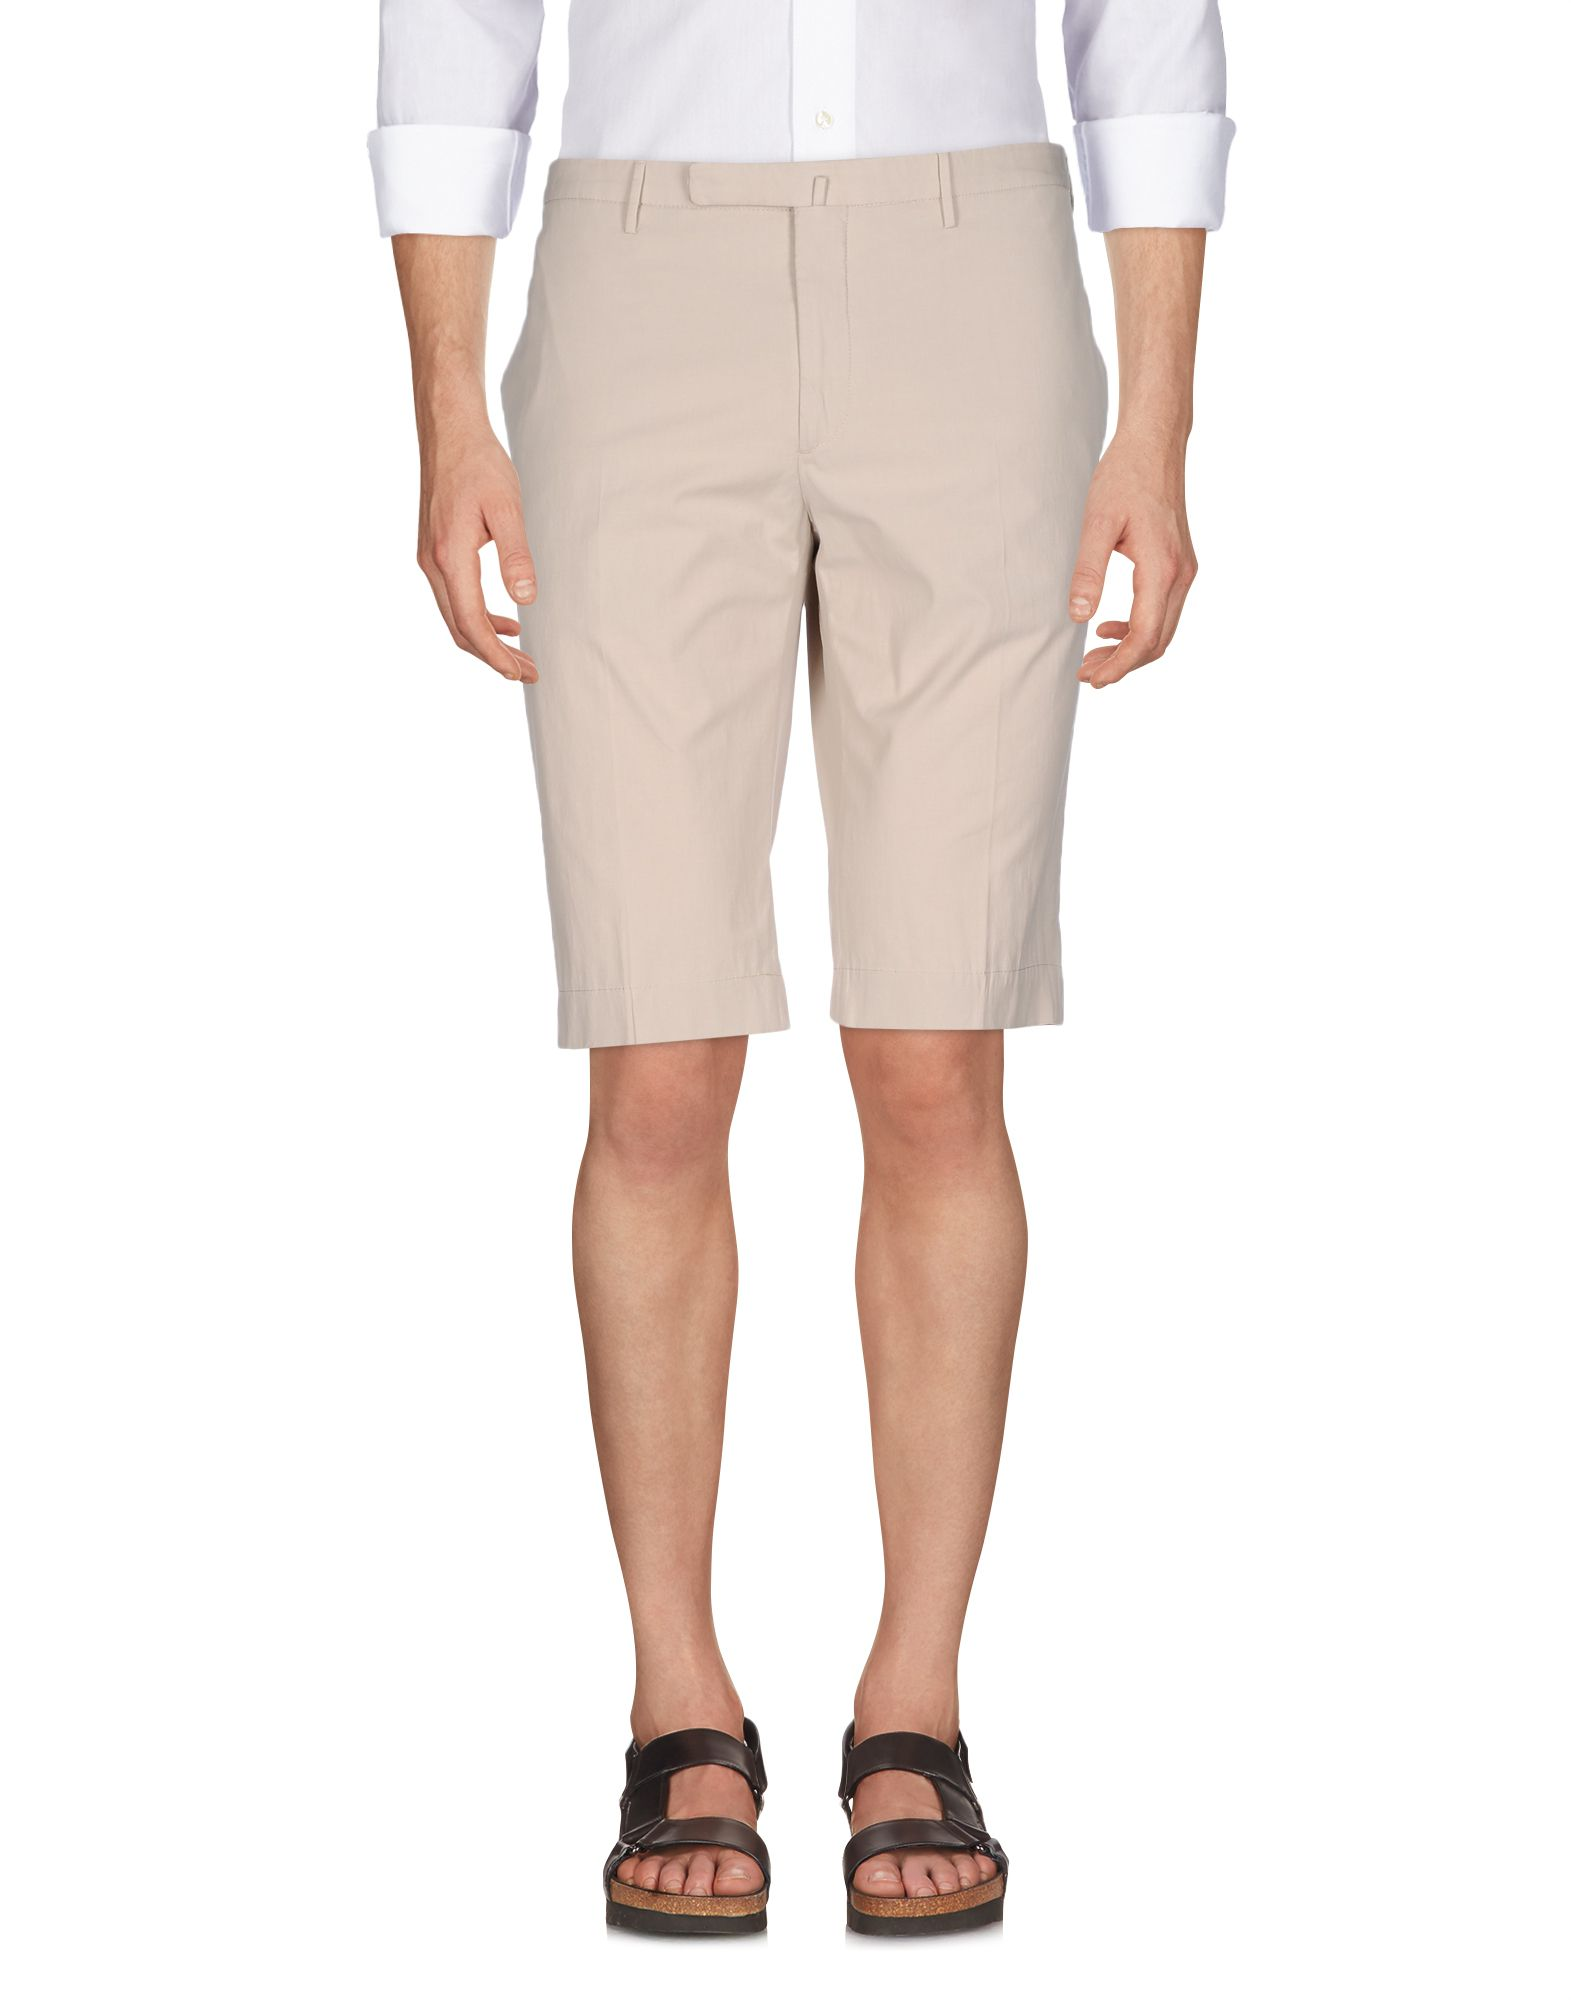 Shorts Incotex Uomo - Acquista online su